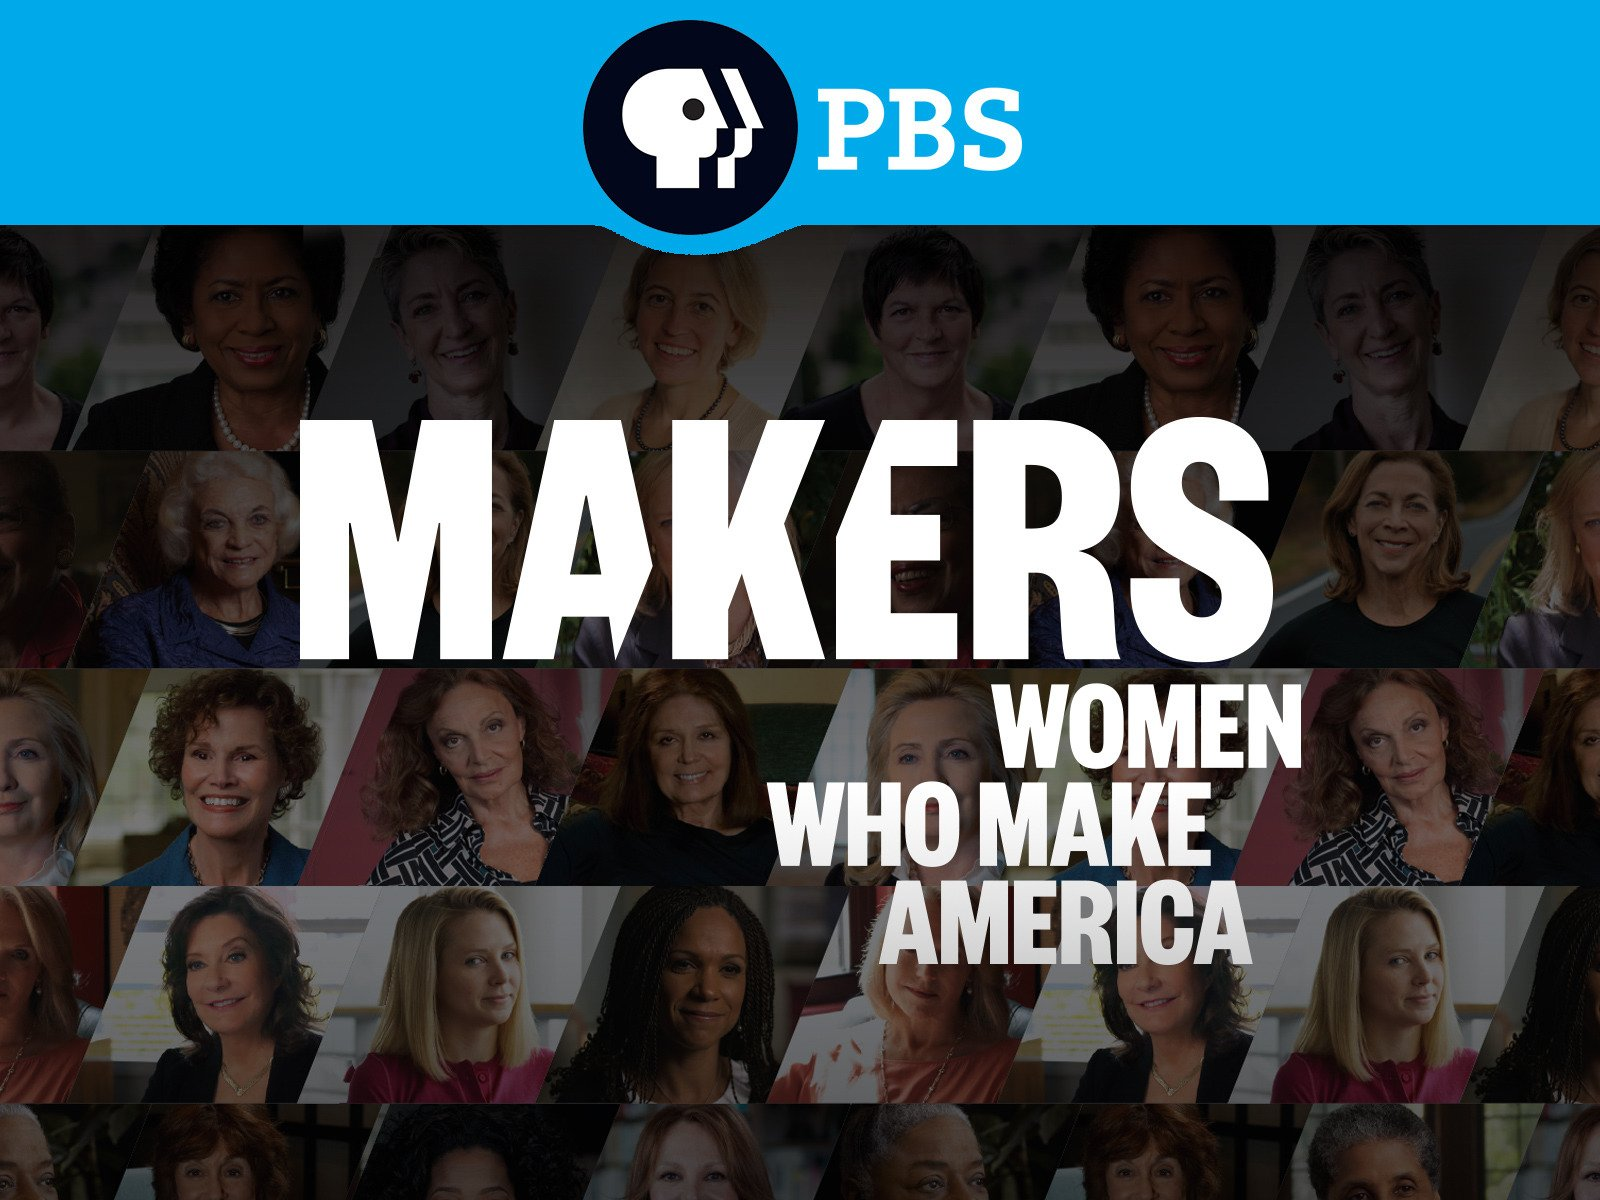 MAKERS Season 2: Women in Business - Archival research assistant for award-winning PBS series,